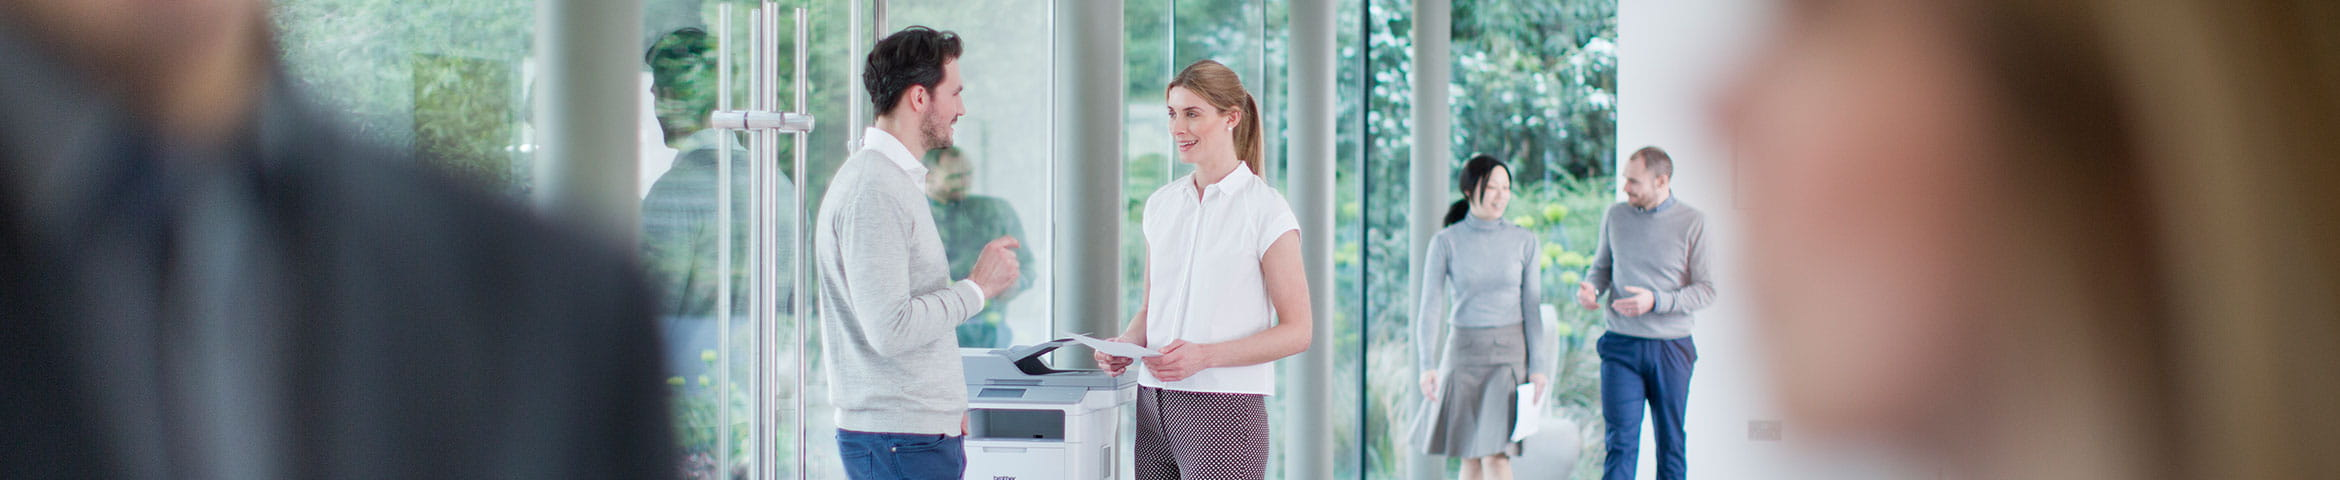 Man and woman talking next to a printer